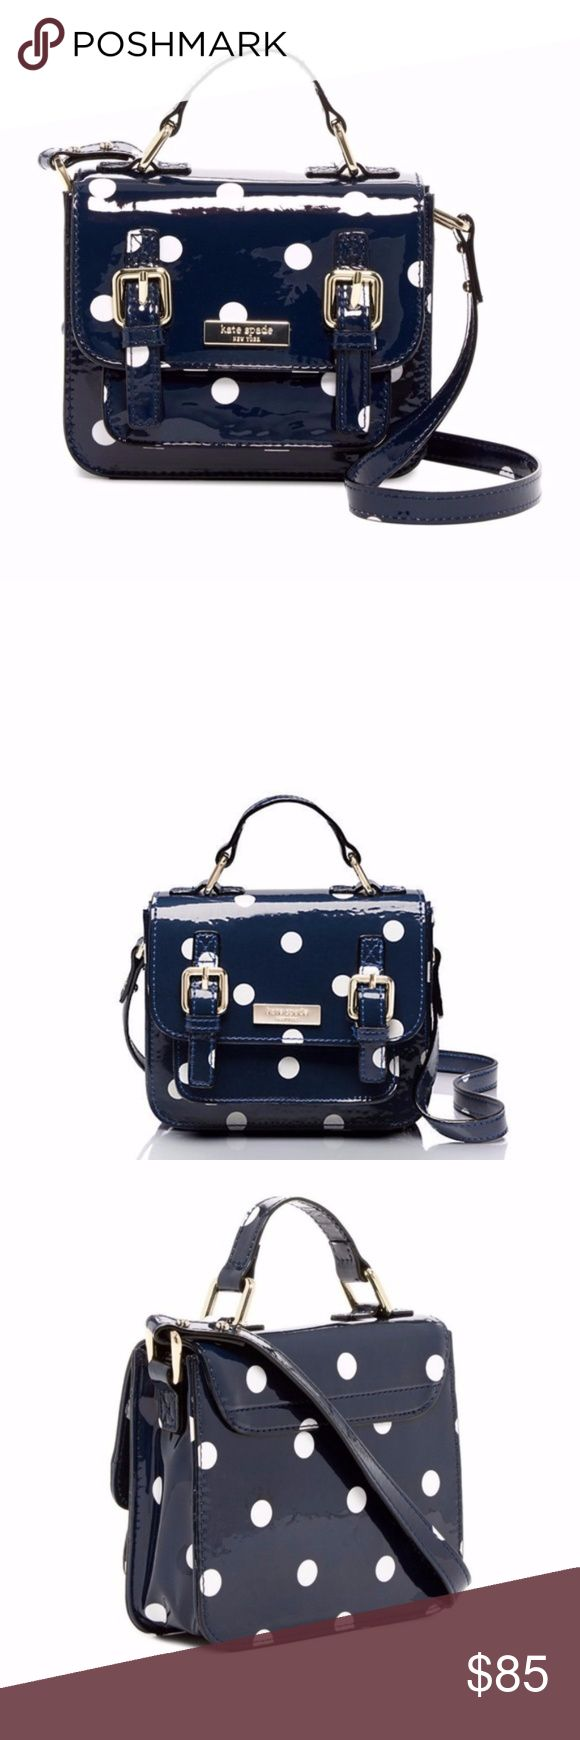 "Kate Spade New York Scout Mini Satchel New With Tags, 100% Authentic, Guaranteed! !! Adorable !! Kate Spade New York Scout Satchel Women's? Kids'? (Girls) Crossbody in Navy Polka Dot Color  Extra-mini, extra-charming. The kate spade new york childrenswear collection is just right for twirling, tumbling and everything in between.  5""h x 1.75""w x 6.5""l drop length: 35"" adjustable strap  14-karat light gold plated hardware  Crossbody bag with adjustable strap and magnetic snap closure interior…"